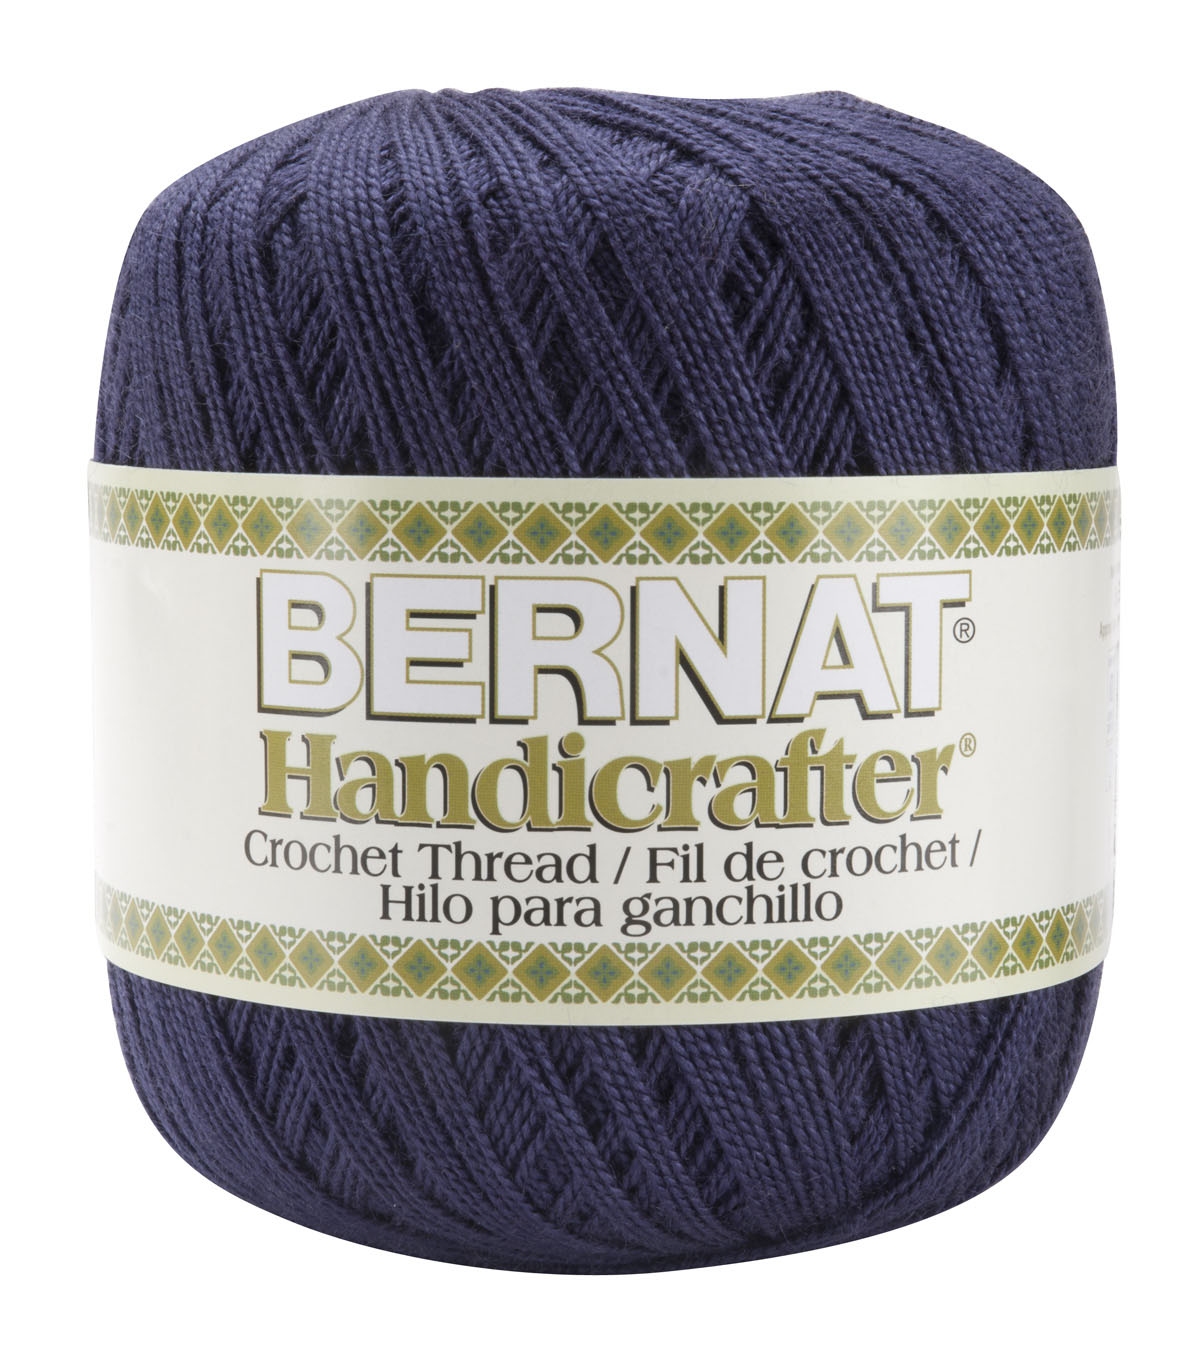 Bernat Handicrafter Crochet Thread